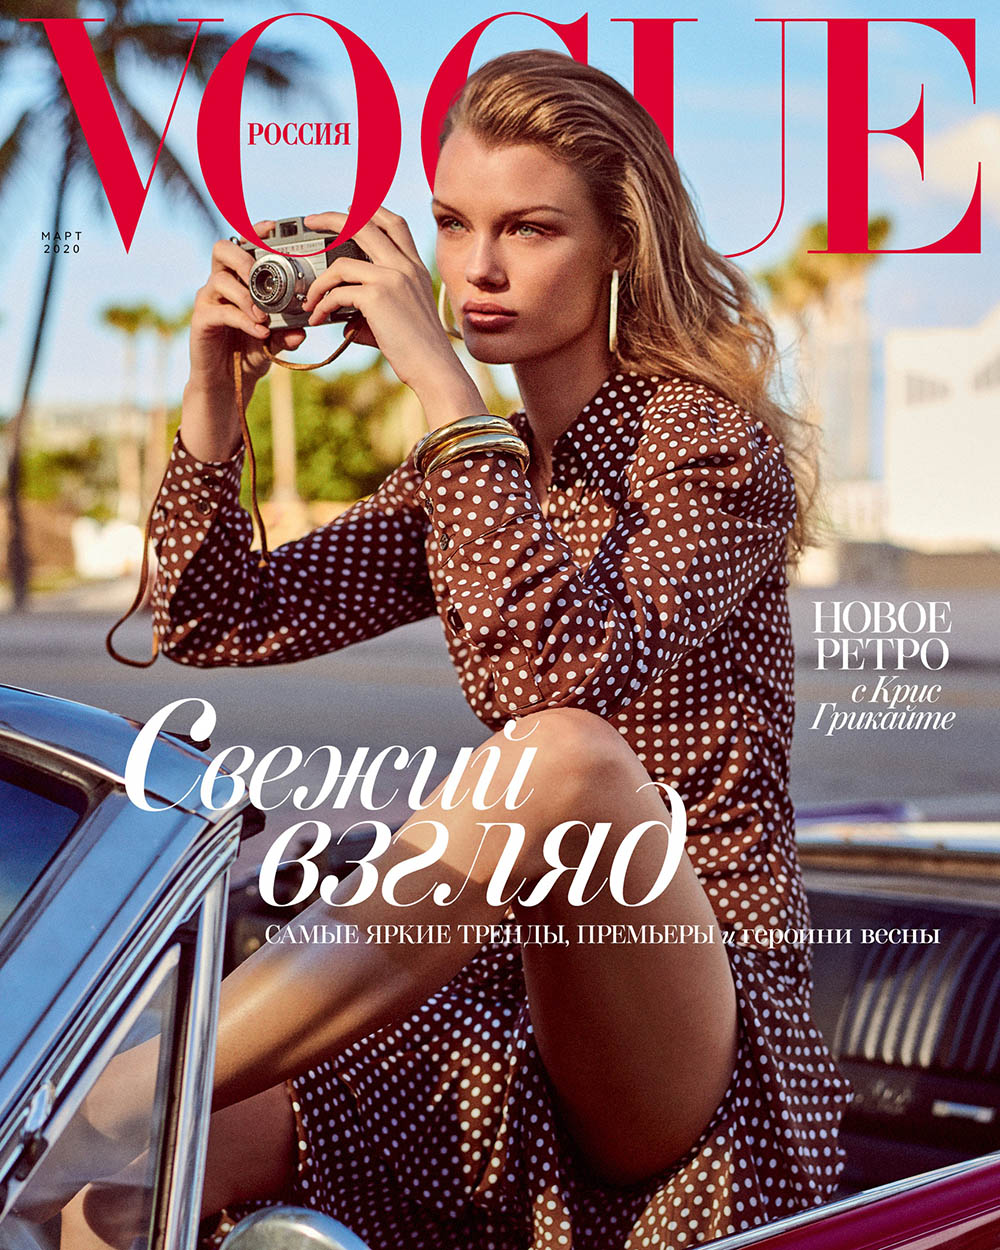 Kris Grikaite covers Vogue Russia March 2020 by Giampaolo Sgura